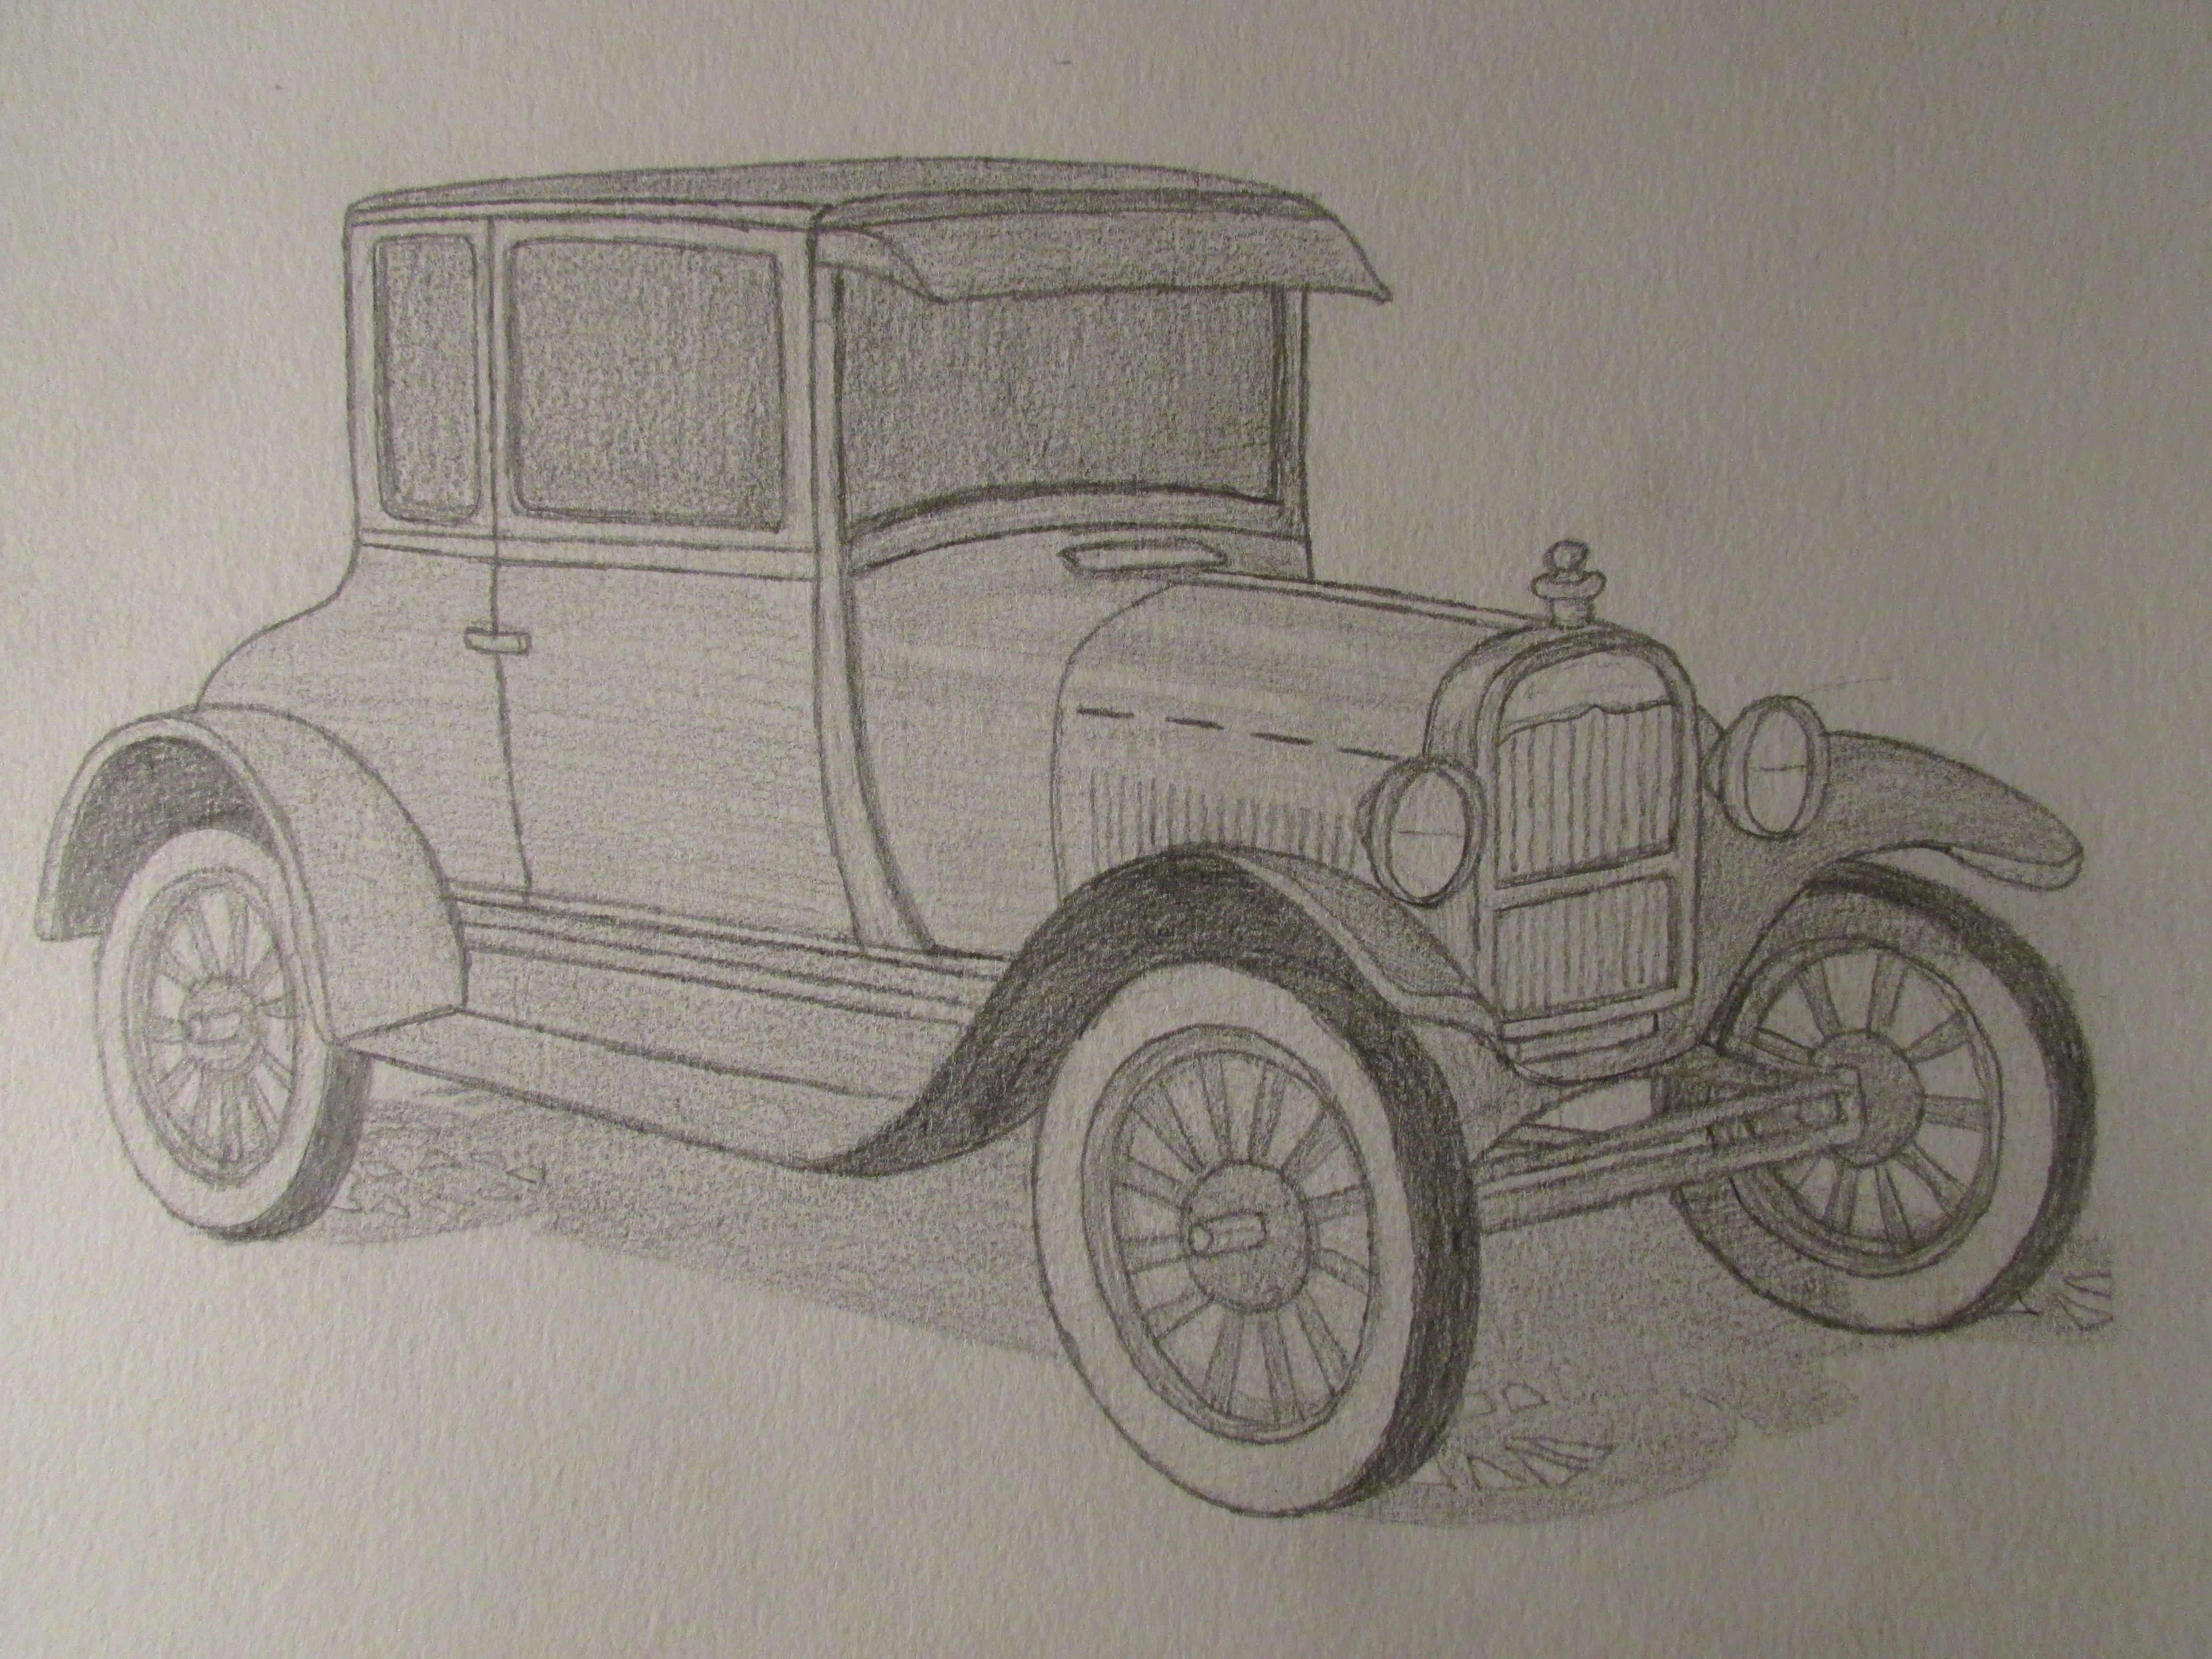 4608x3456 Car Pencil Sketch Images Pictures Pencil Drawings Of Old Cars